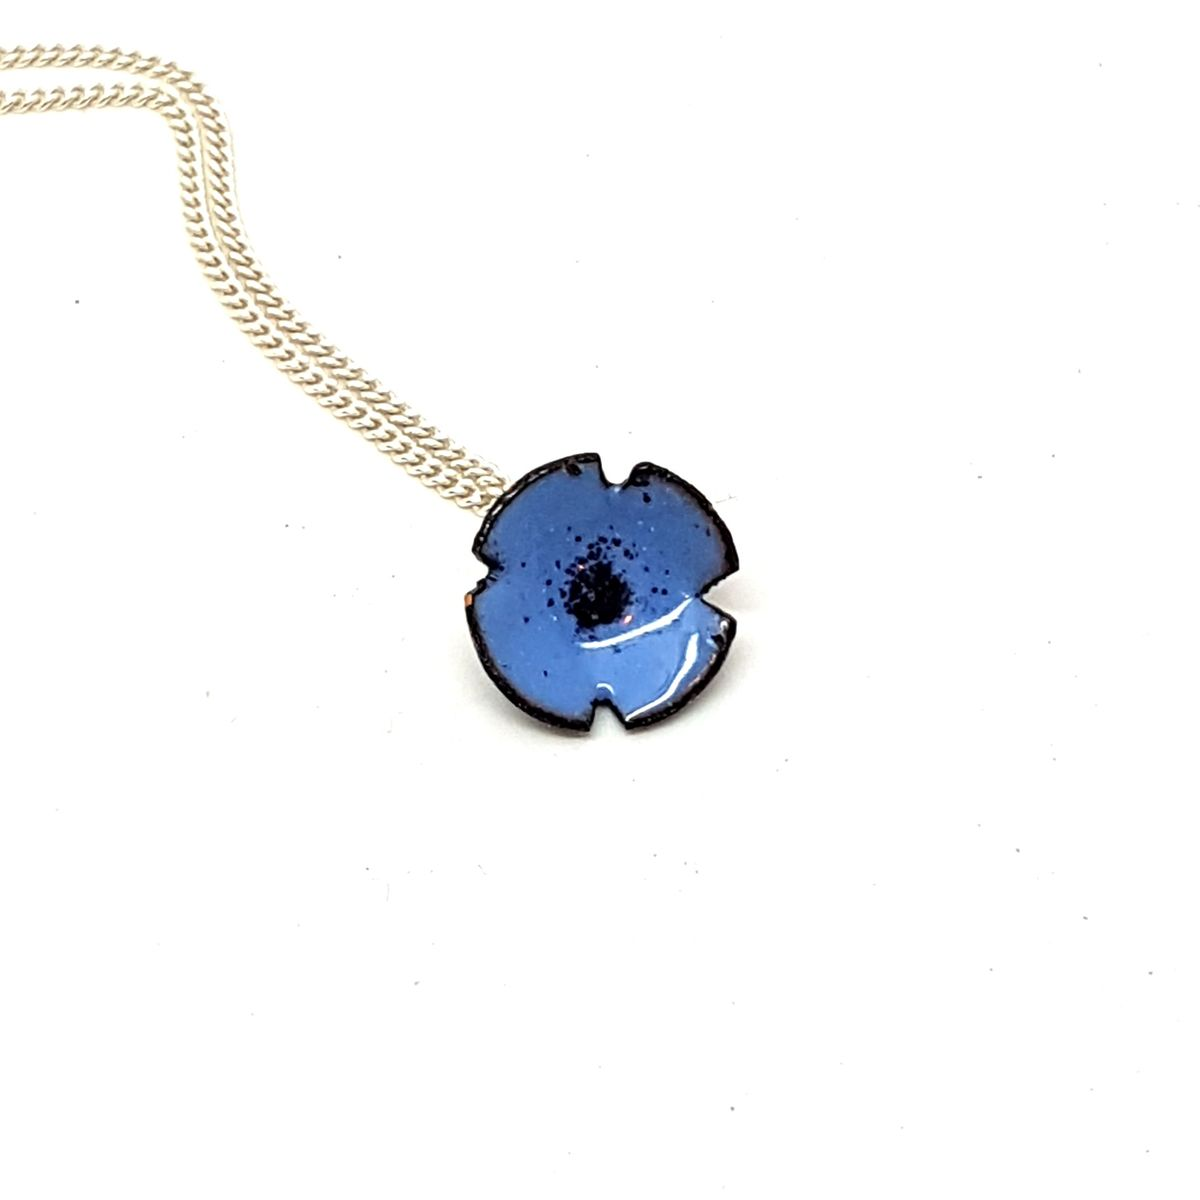 Blue Poppy Flower Pendant - product images  of